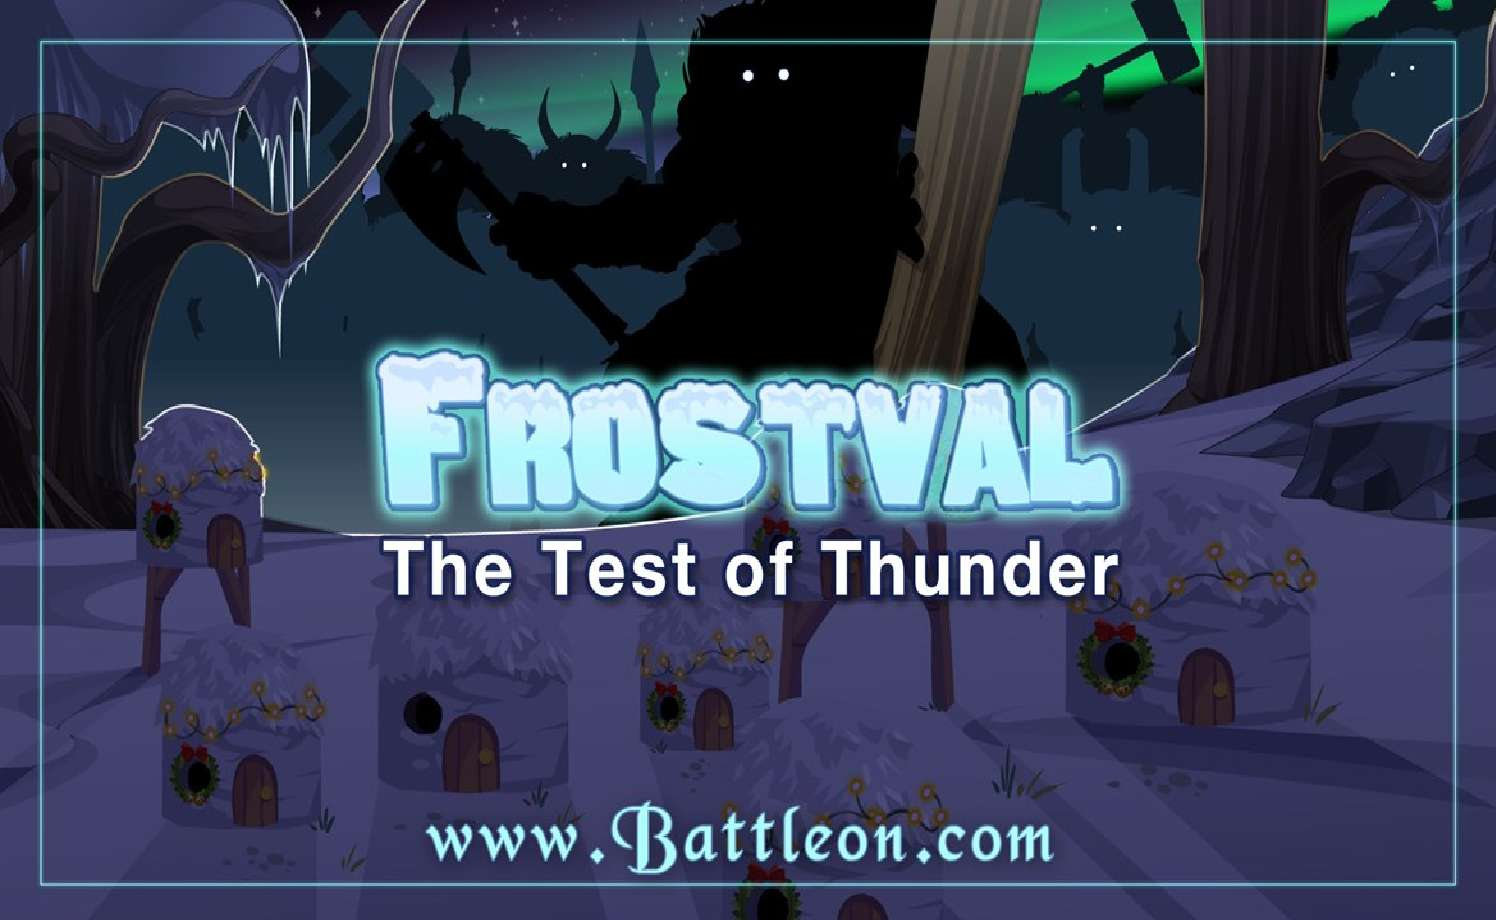 The Original AdventureQuest Celebrates Frostval With The Test Of Thunder